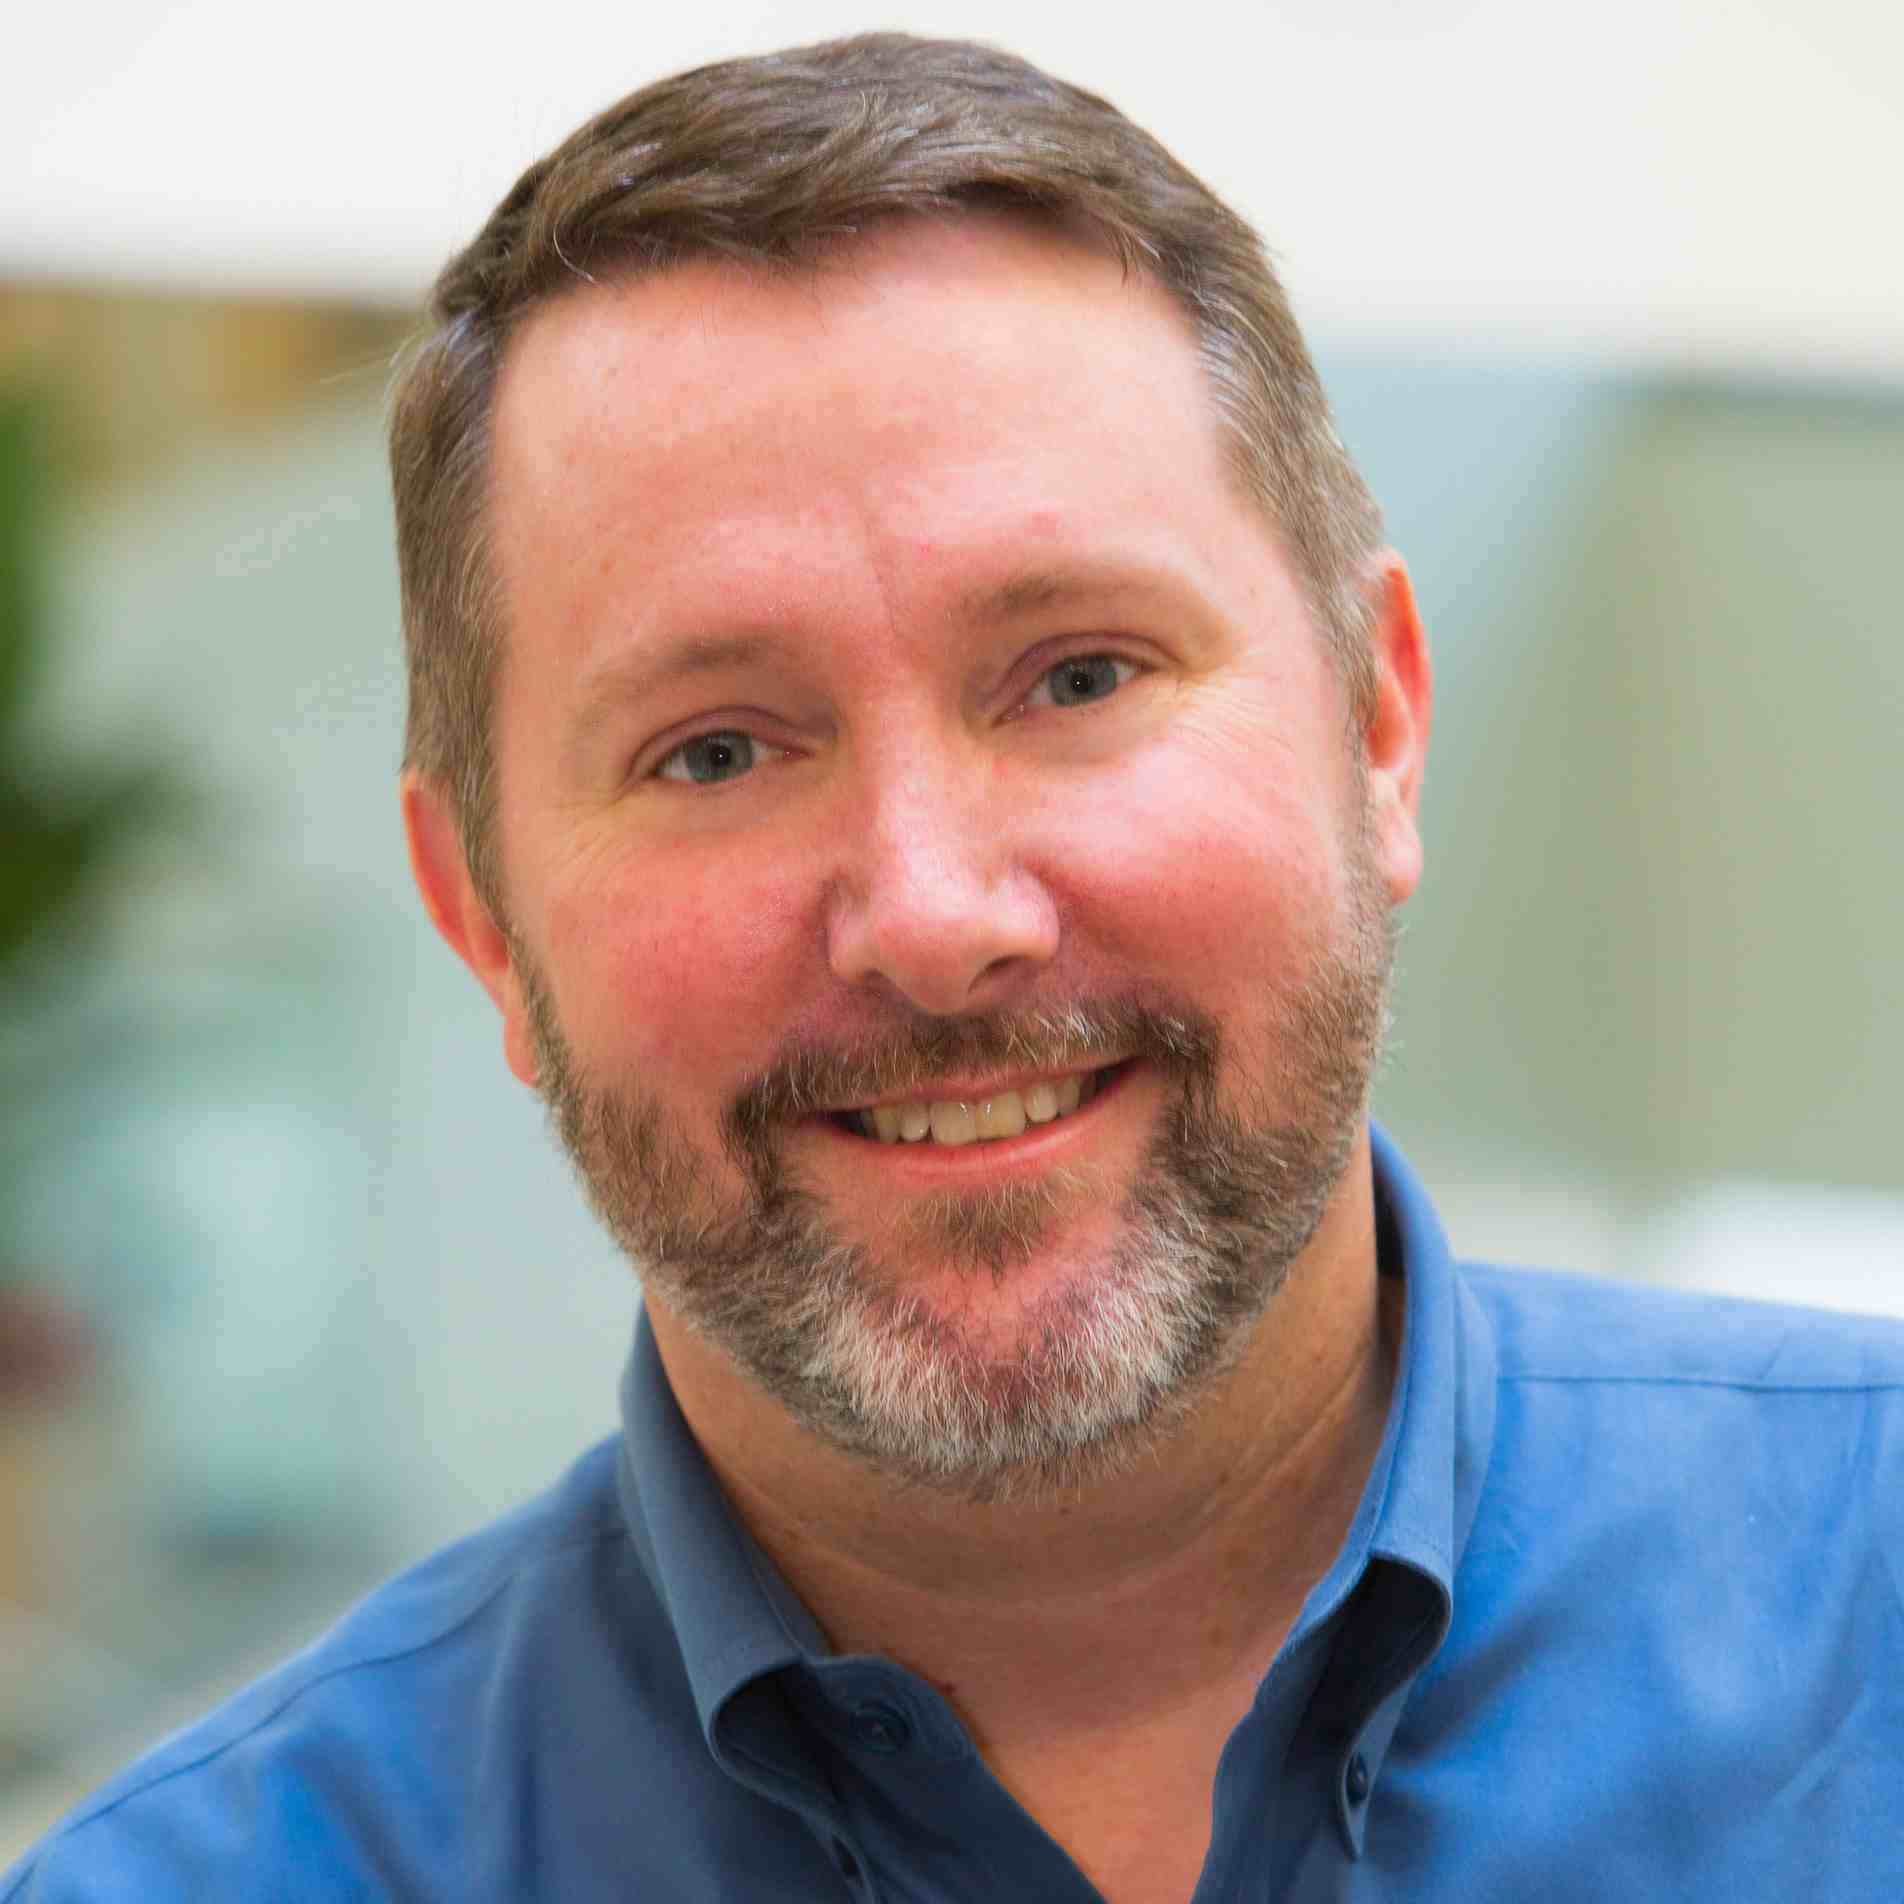 Geoff Ables, C5 Insight Managing Partner, Selected as Featured Speaker at Office 365 Adoption User Group Meeting in Chicago